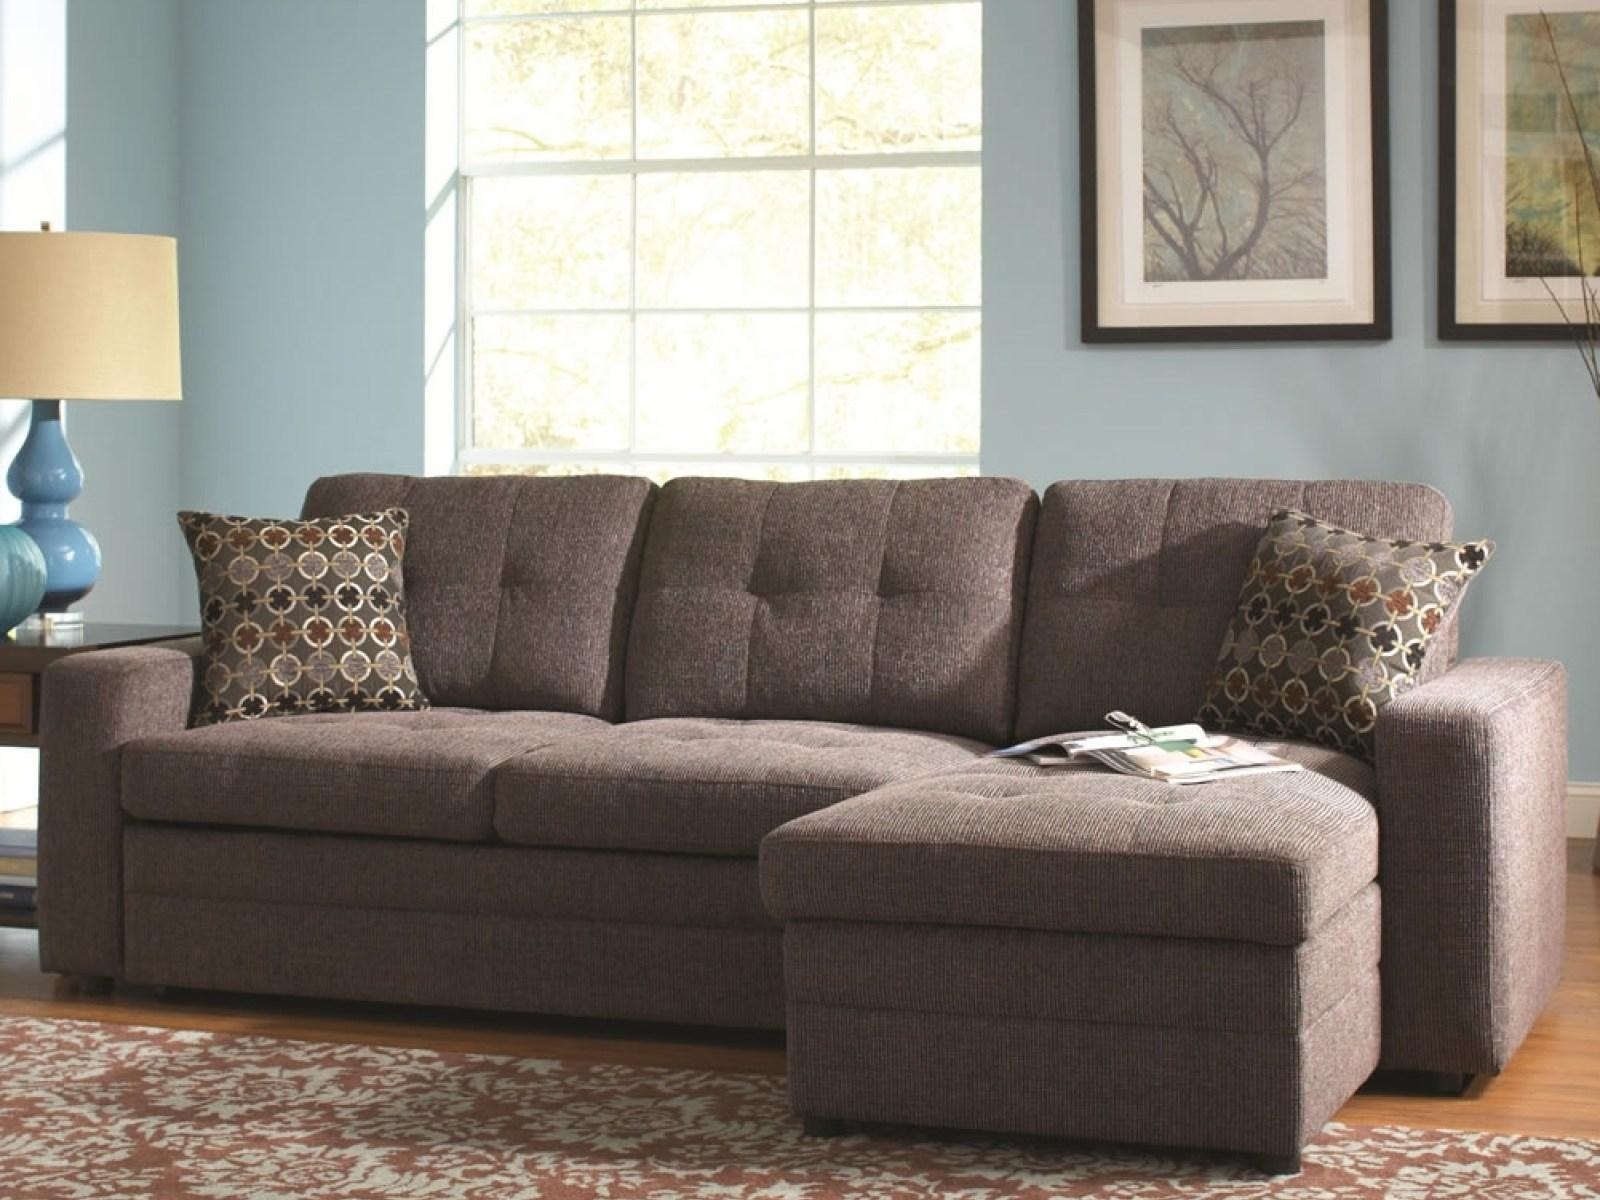 ☆▻ Sofa : 15 Good Looking Reclining Sectional Sofas For Small For Small Sectional Sofas For Small Spaces (Image 1 of 20)